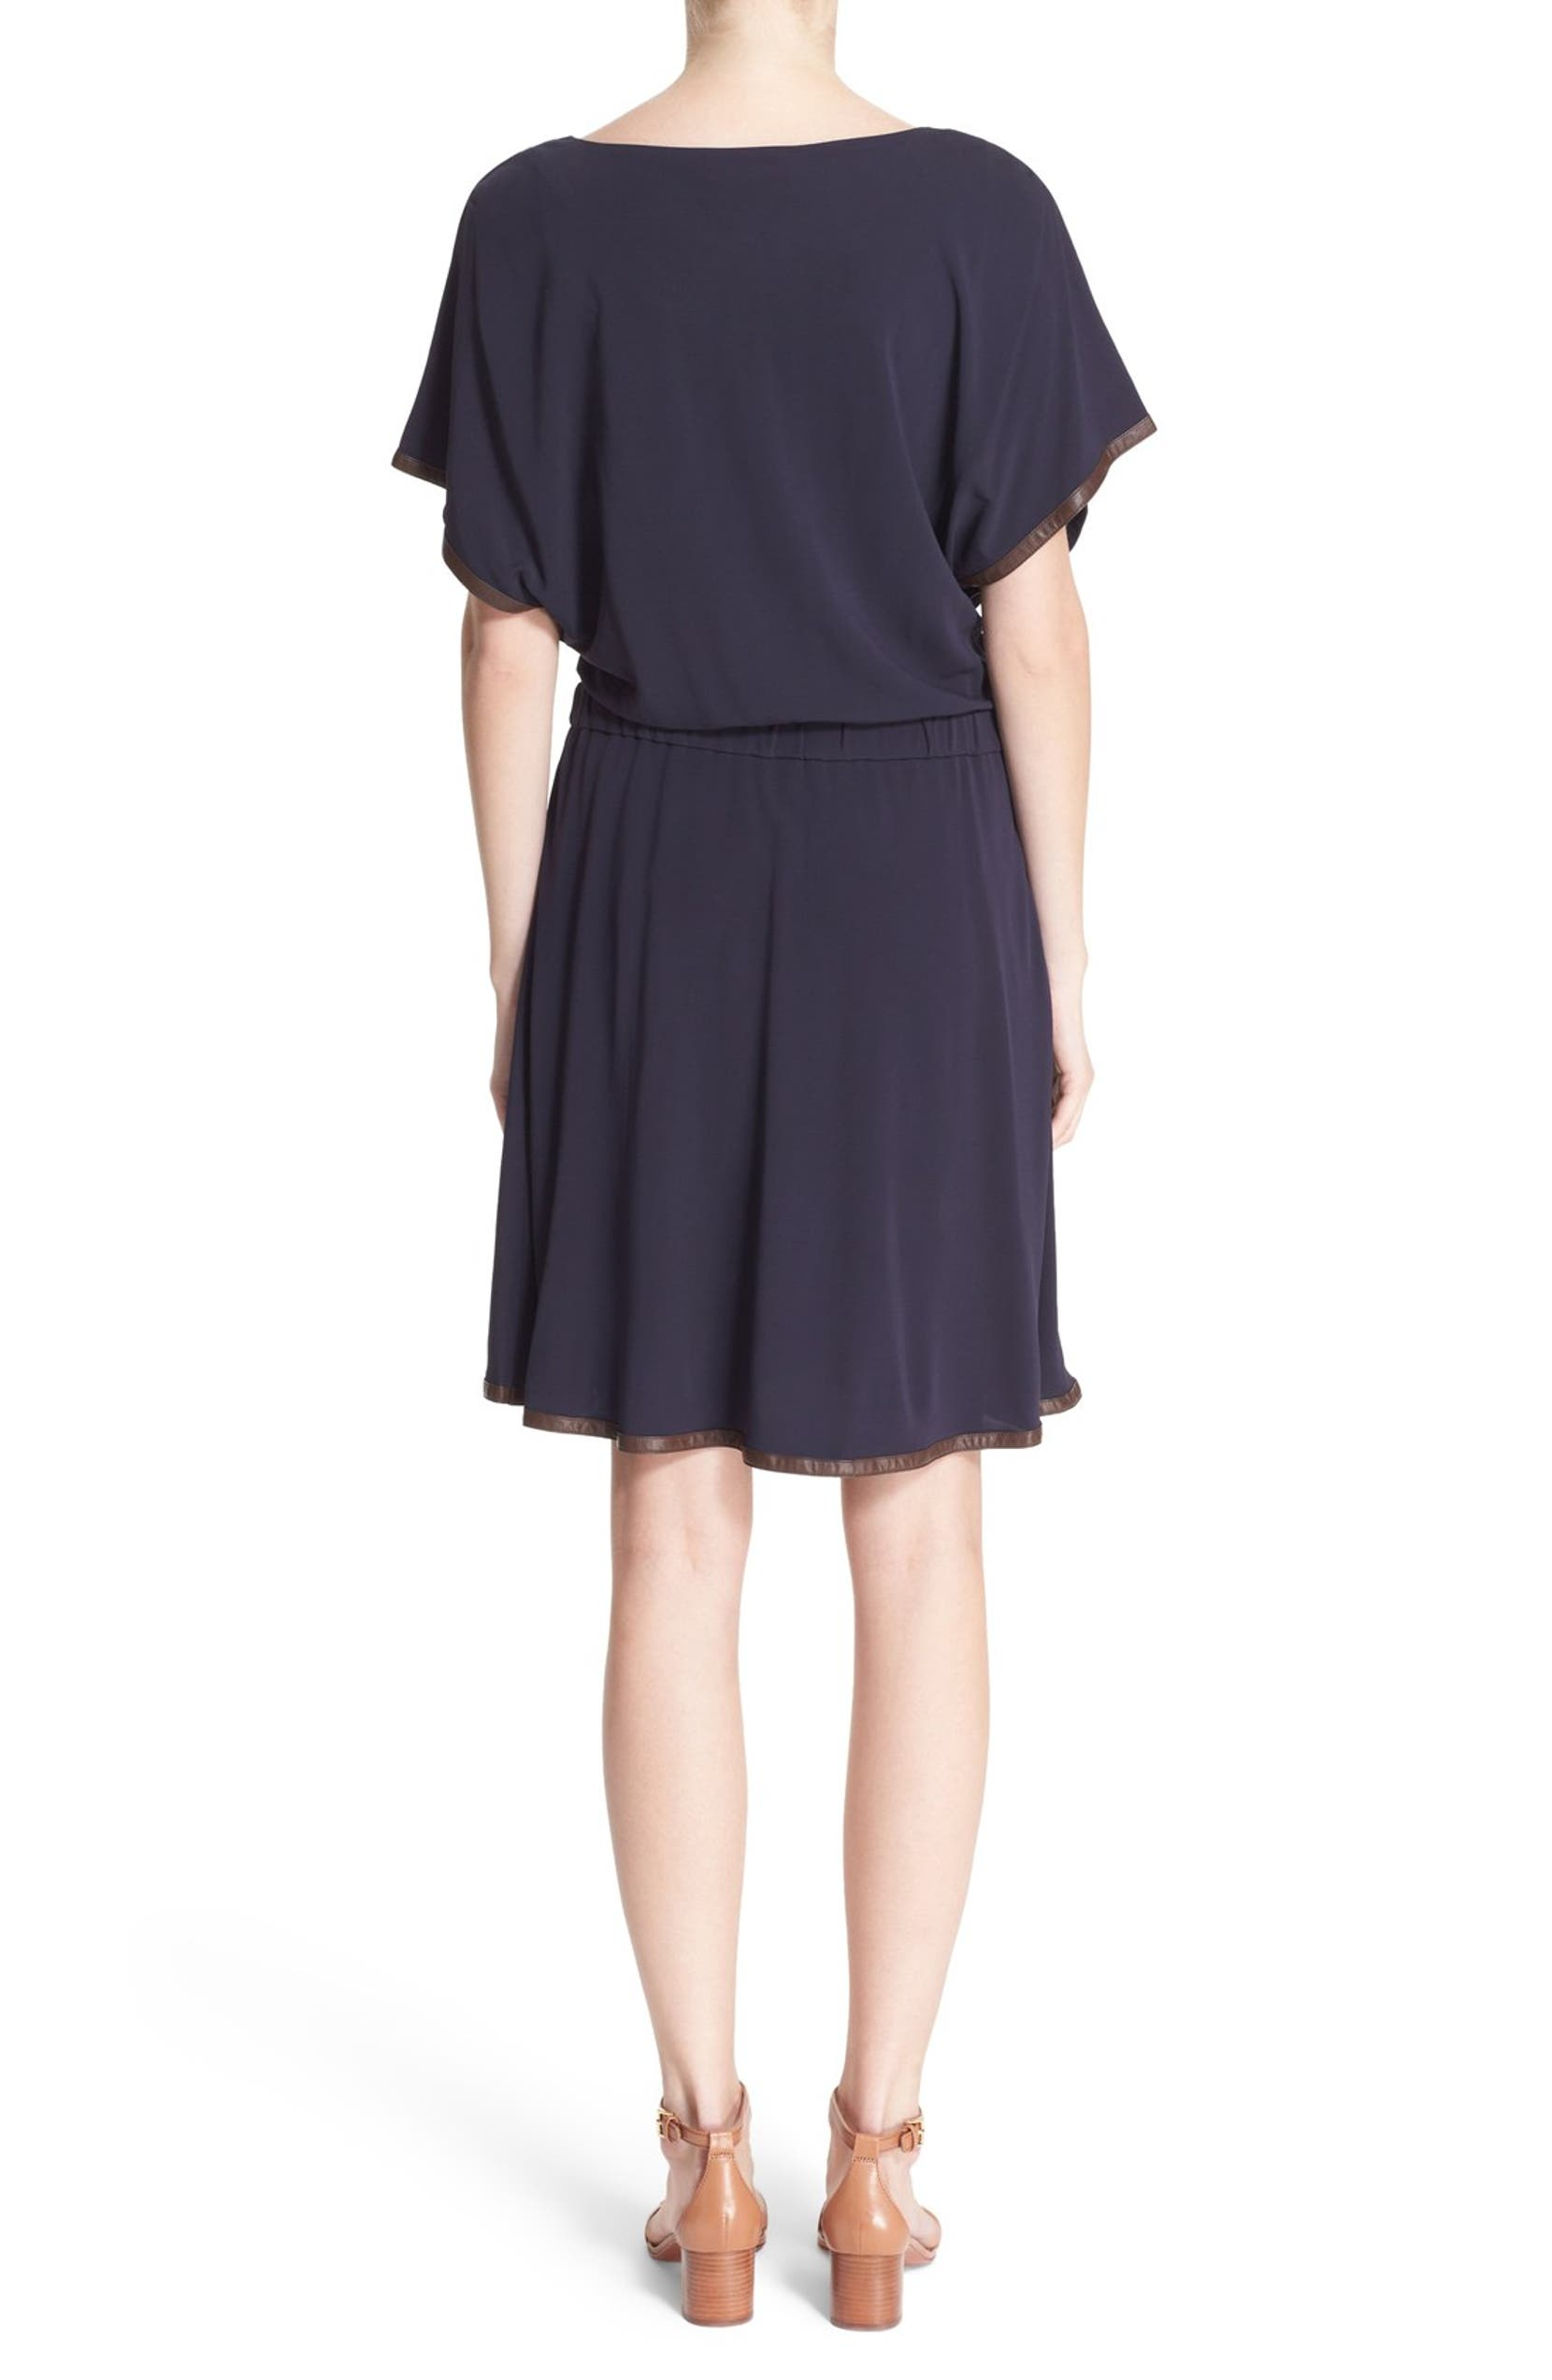 2dd1ebccc048 Tory Burch 'Shia' Faux Leather Trim Blouson Dress | Nordstrom